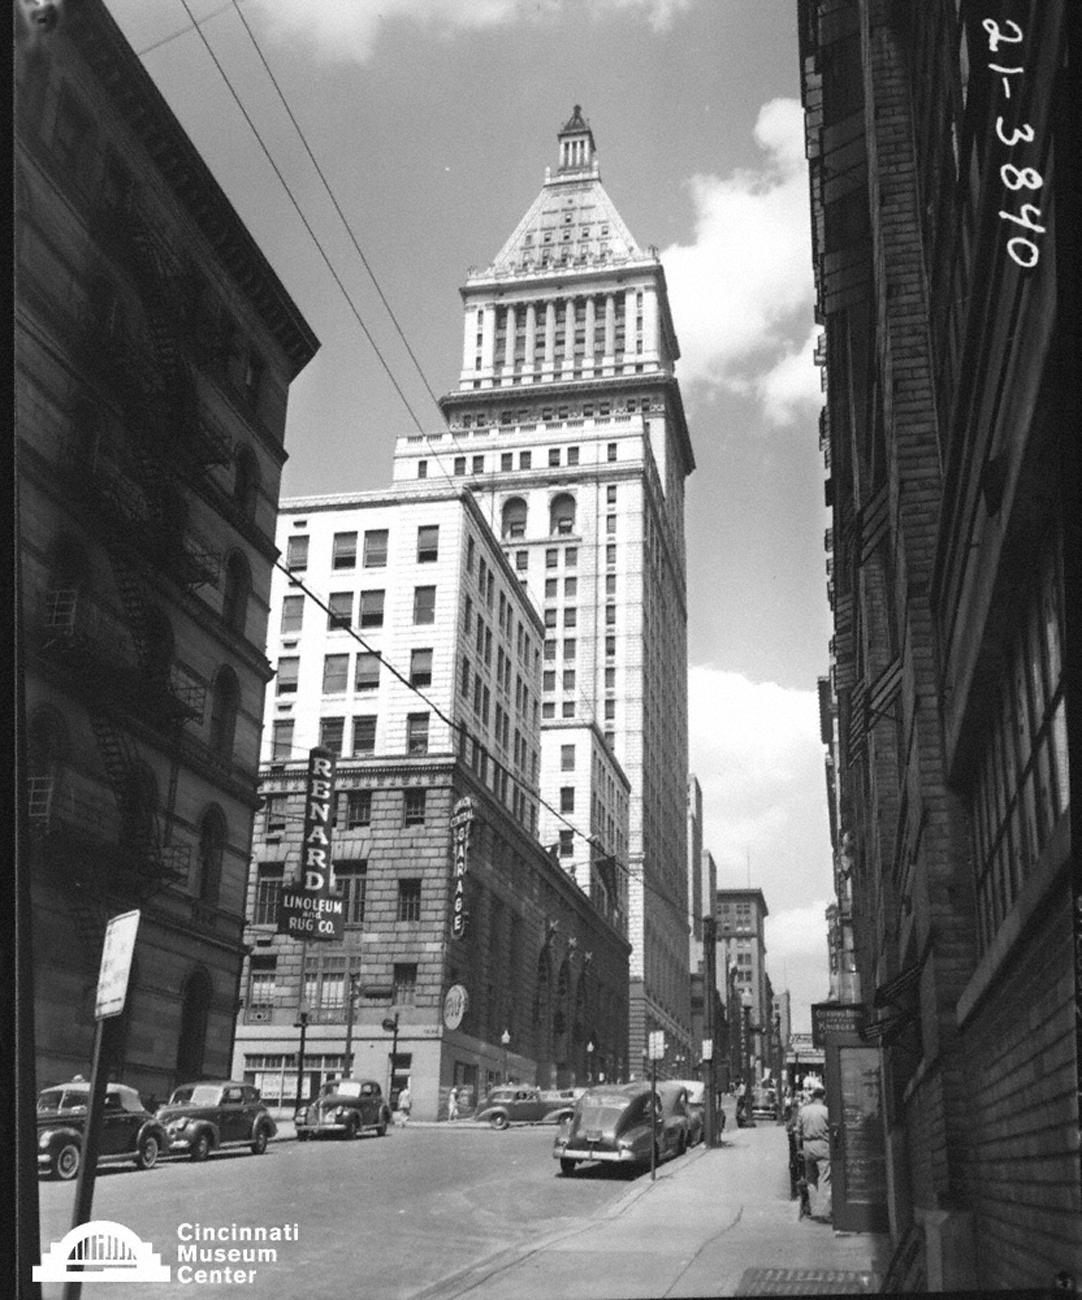 Looking north on Vine Street toward the 4th and Vine Tower in the early 20th Century / Image: Paul Briol,  accessed via the Cincinnati Museum Center History Library and Archives // Published: 2.16.19